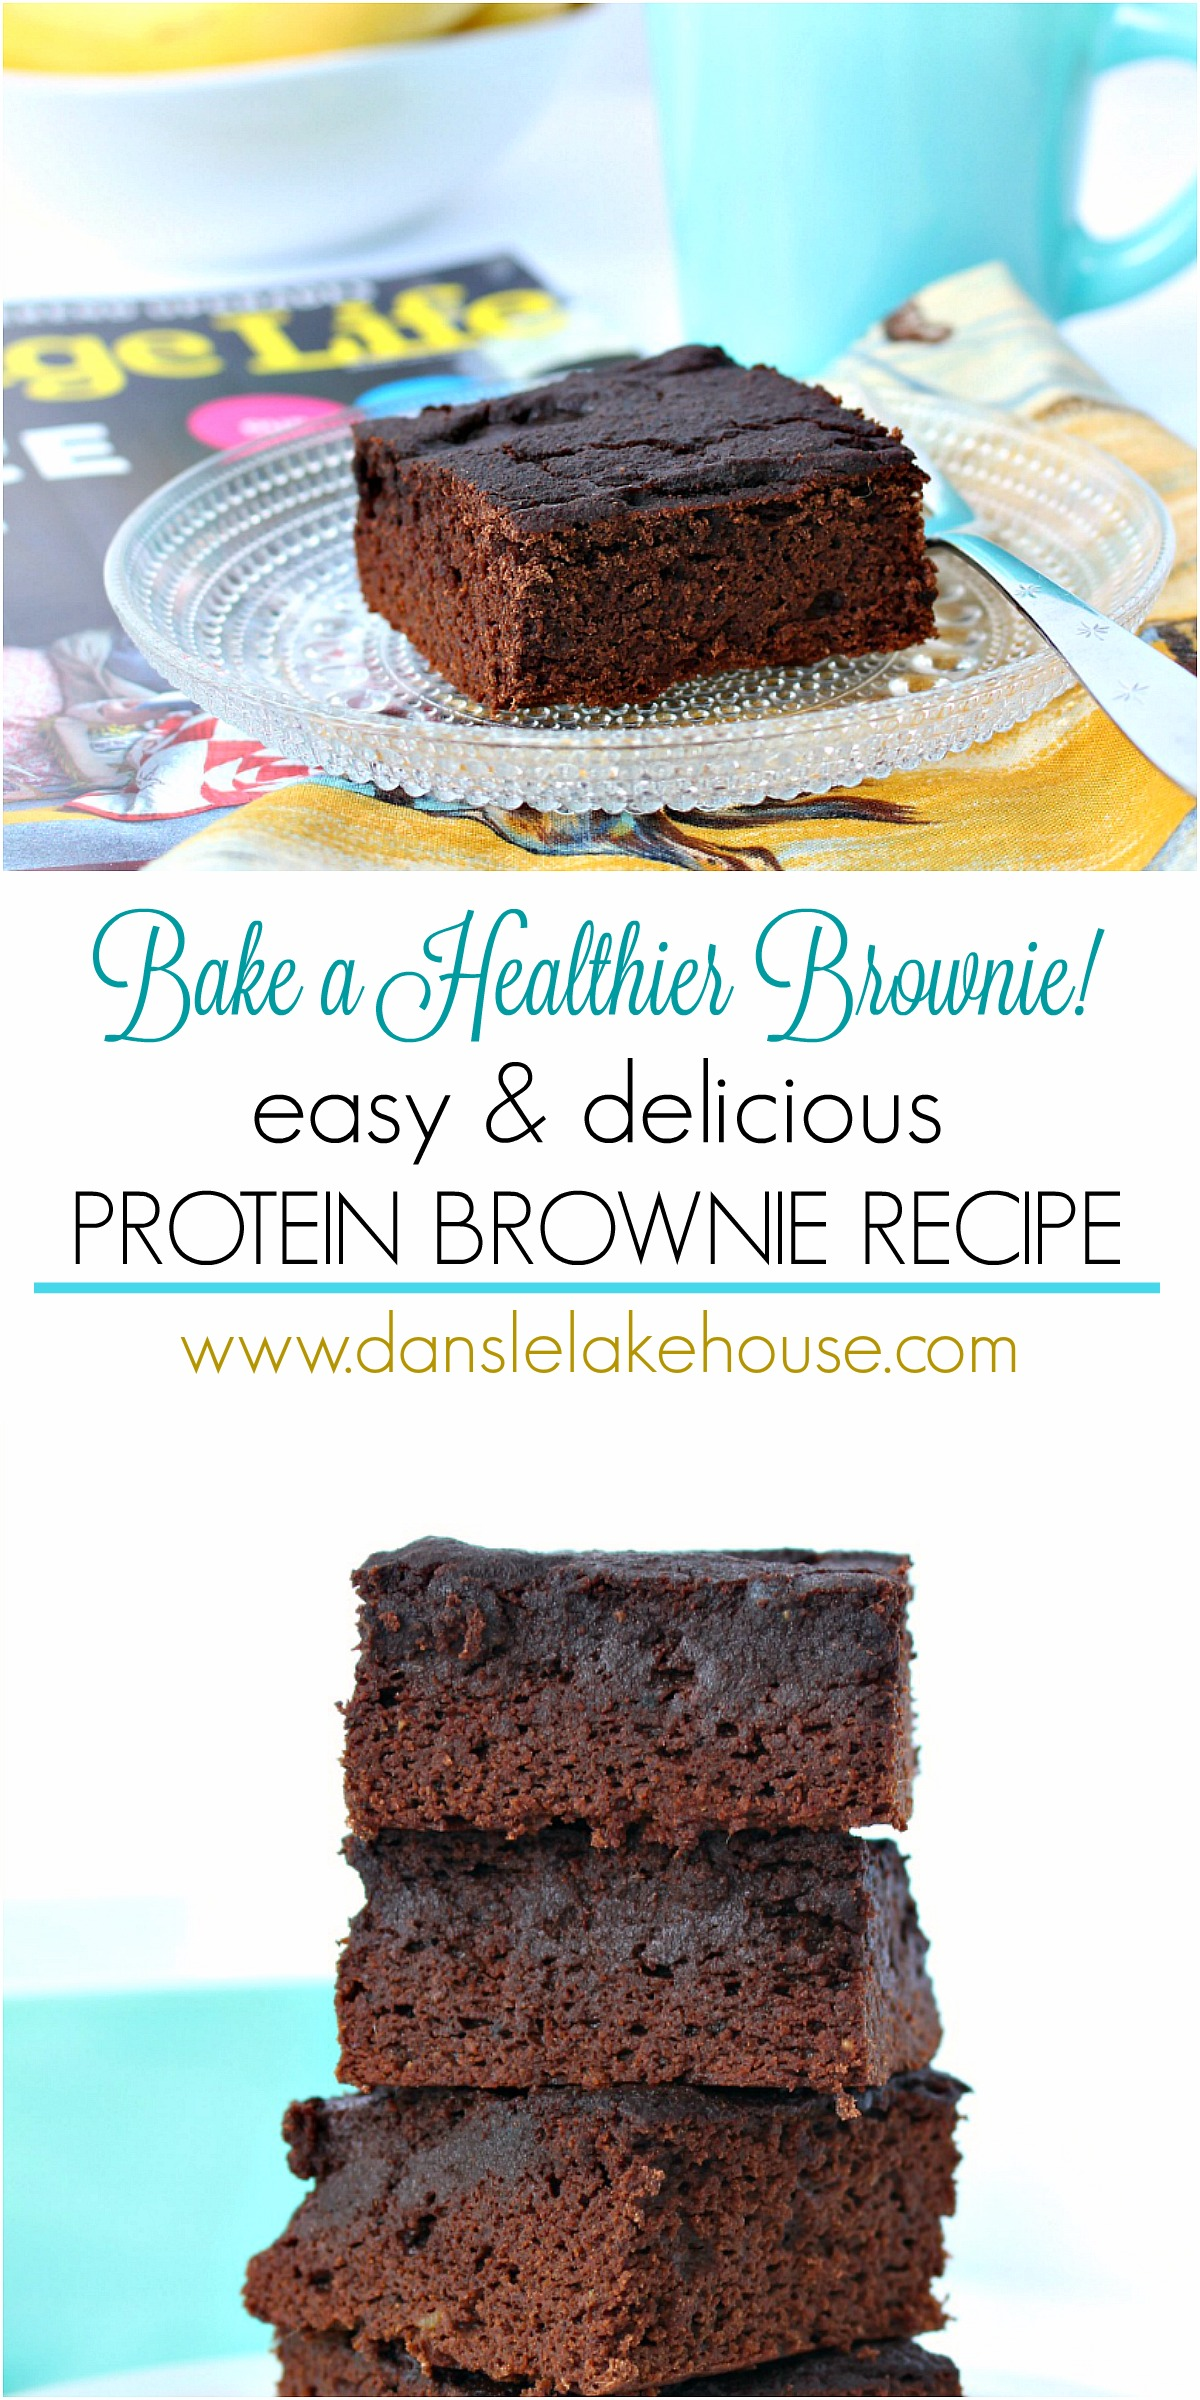 Easy and Delicious Protein Brownie Recipe - Plus Tips for Baking with Coconut Flour and Protein Powder #sugarfreebaking #proteintreats #healthybaking #quittingsugar